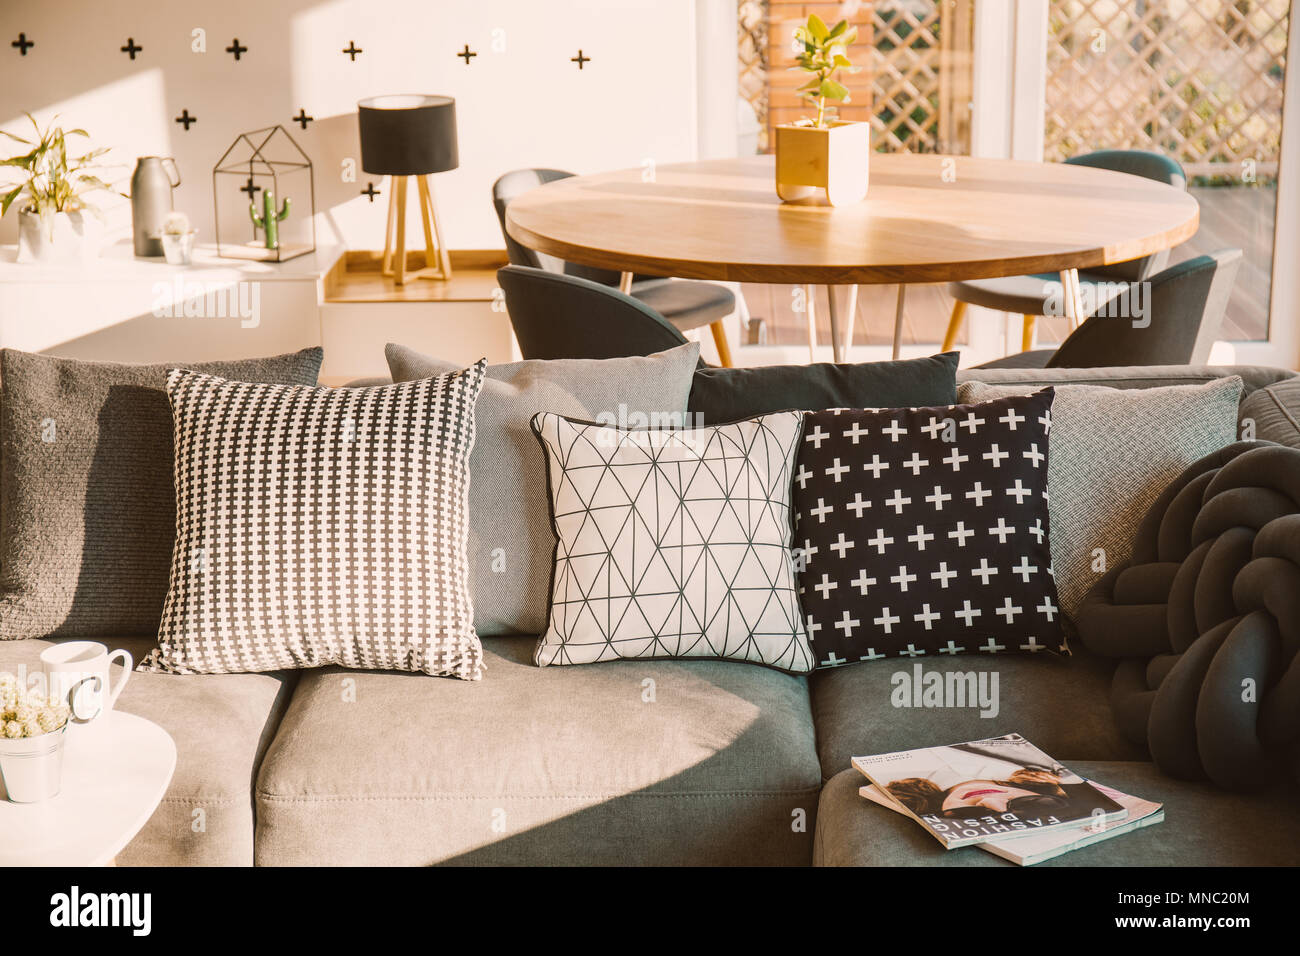 Black And White Decorative Pillows On A Gray Sofa In A Sunlit Living Room Interior With A Wooden Dining Table Stock Photo Alamy